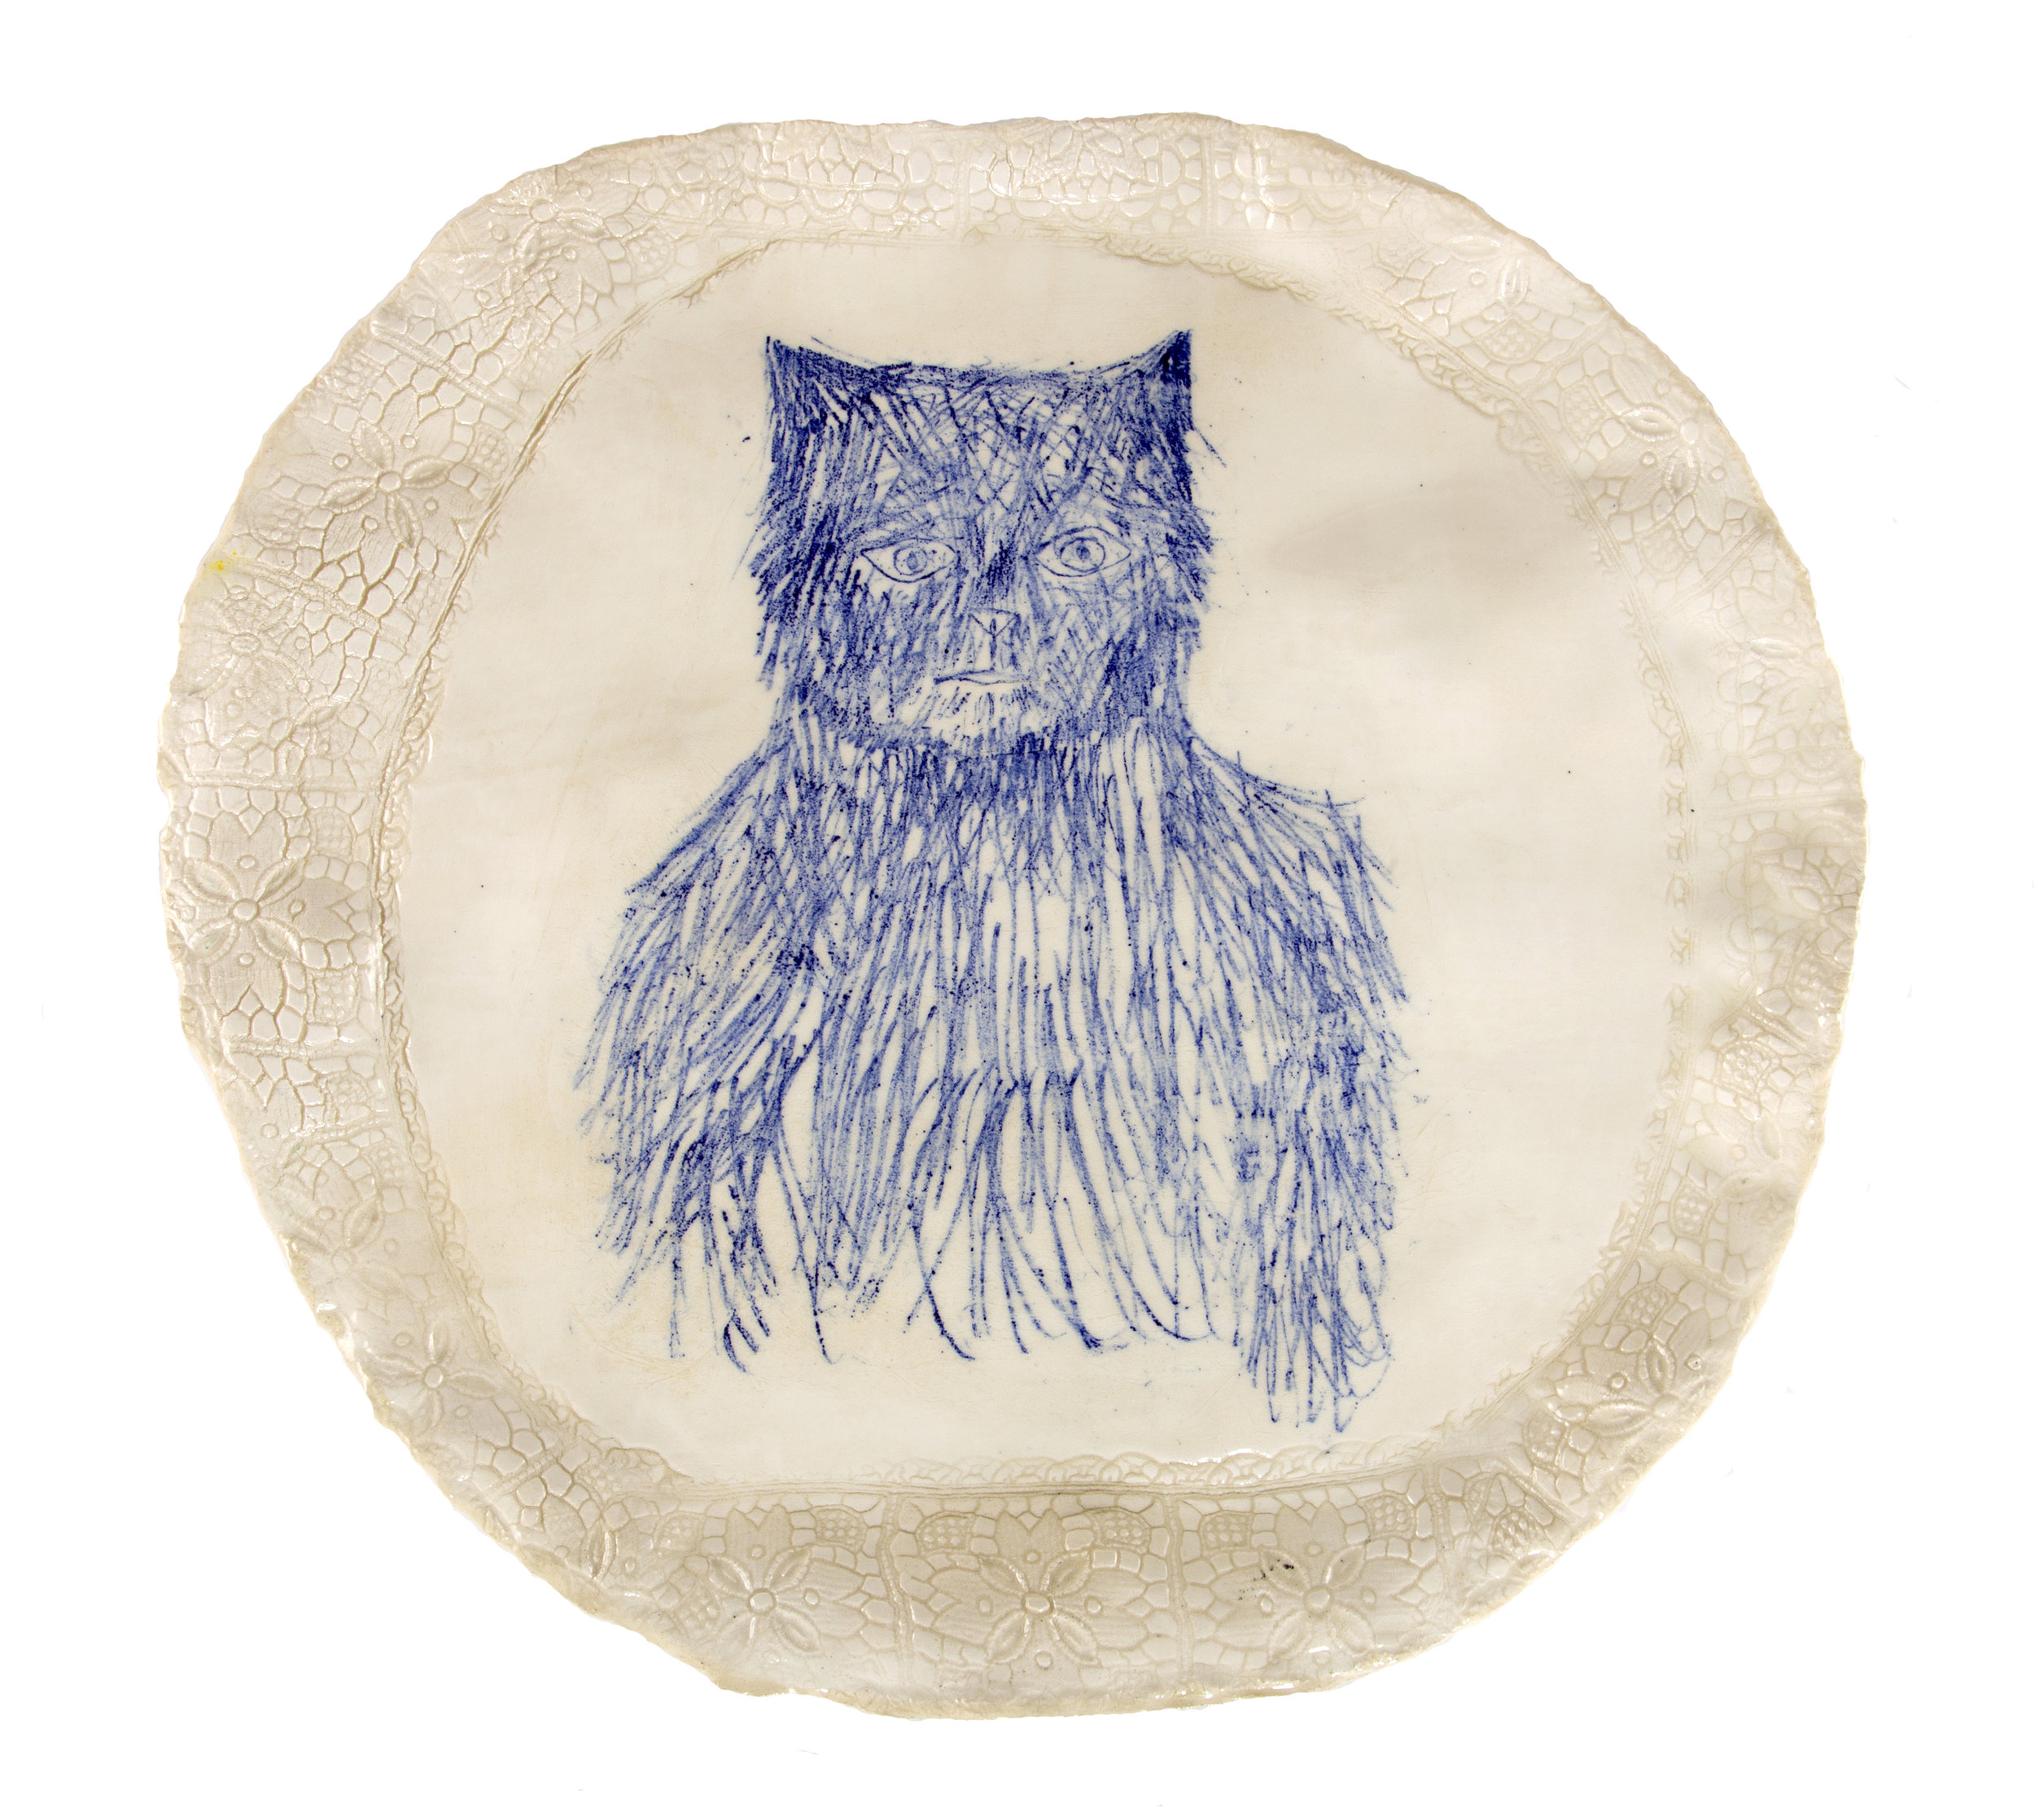 Echo - Ceramic plate with cobalt drawing and lace textured border.I adopted a homeless cat called Echo who inspired a whole series of plates.